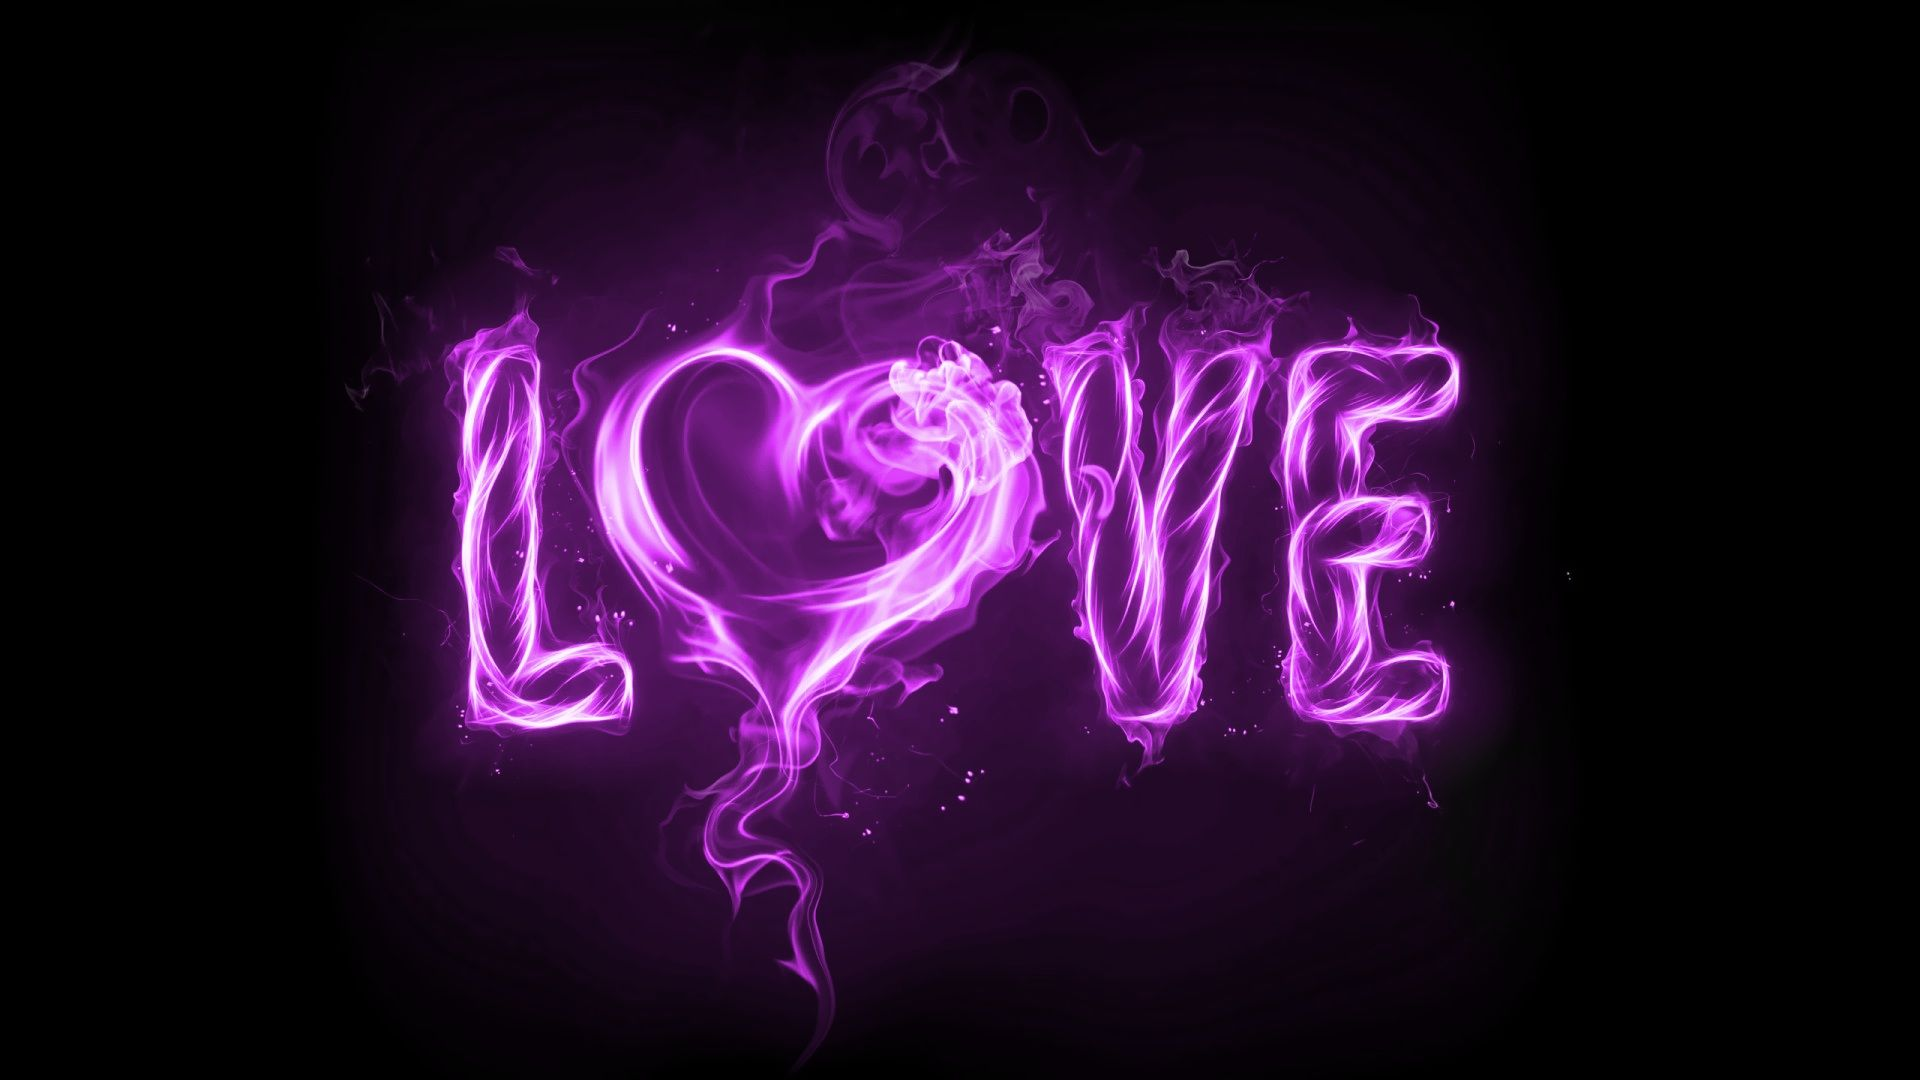 20 Top Level Collection Of Purple Wallpapers A House Of Fun Love Wallpaper Purple Wallpaper Purple Love